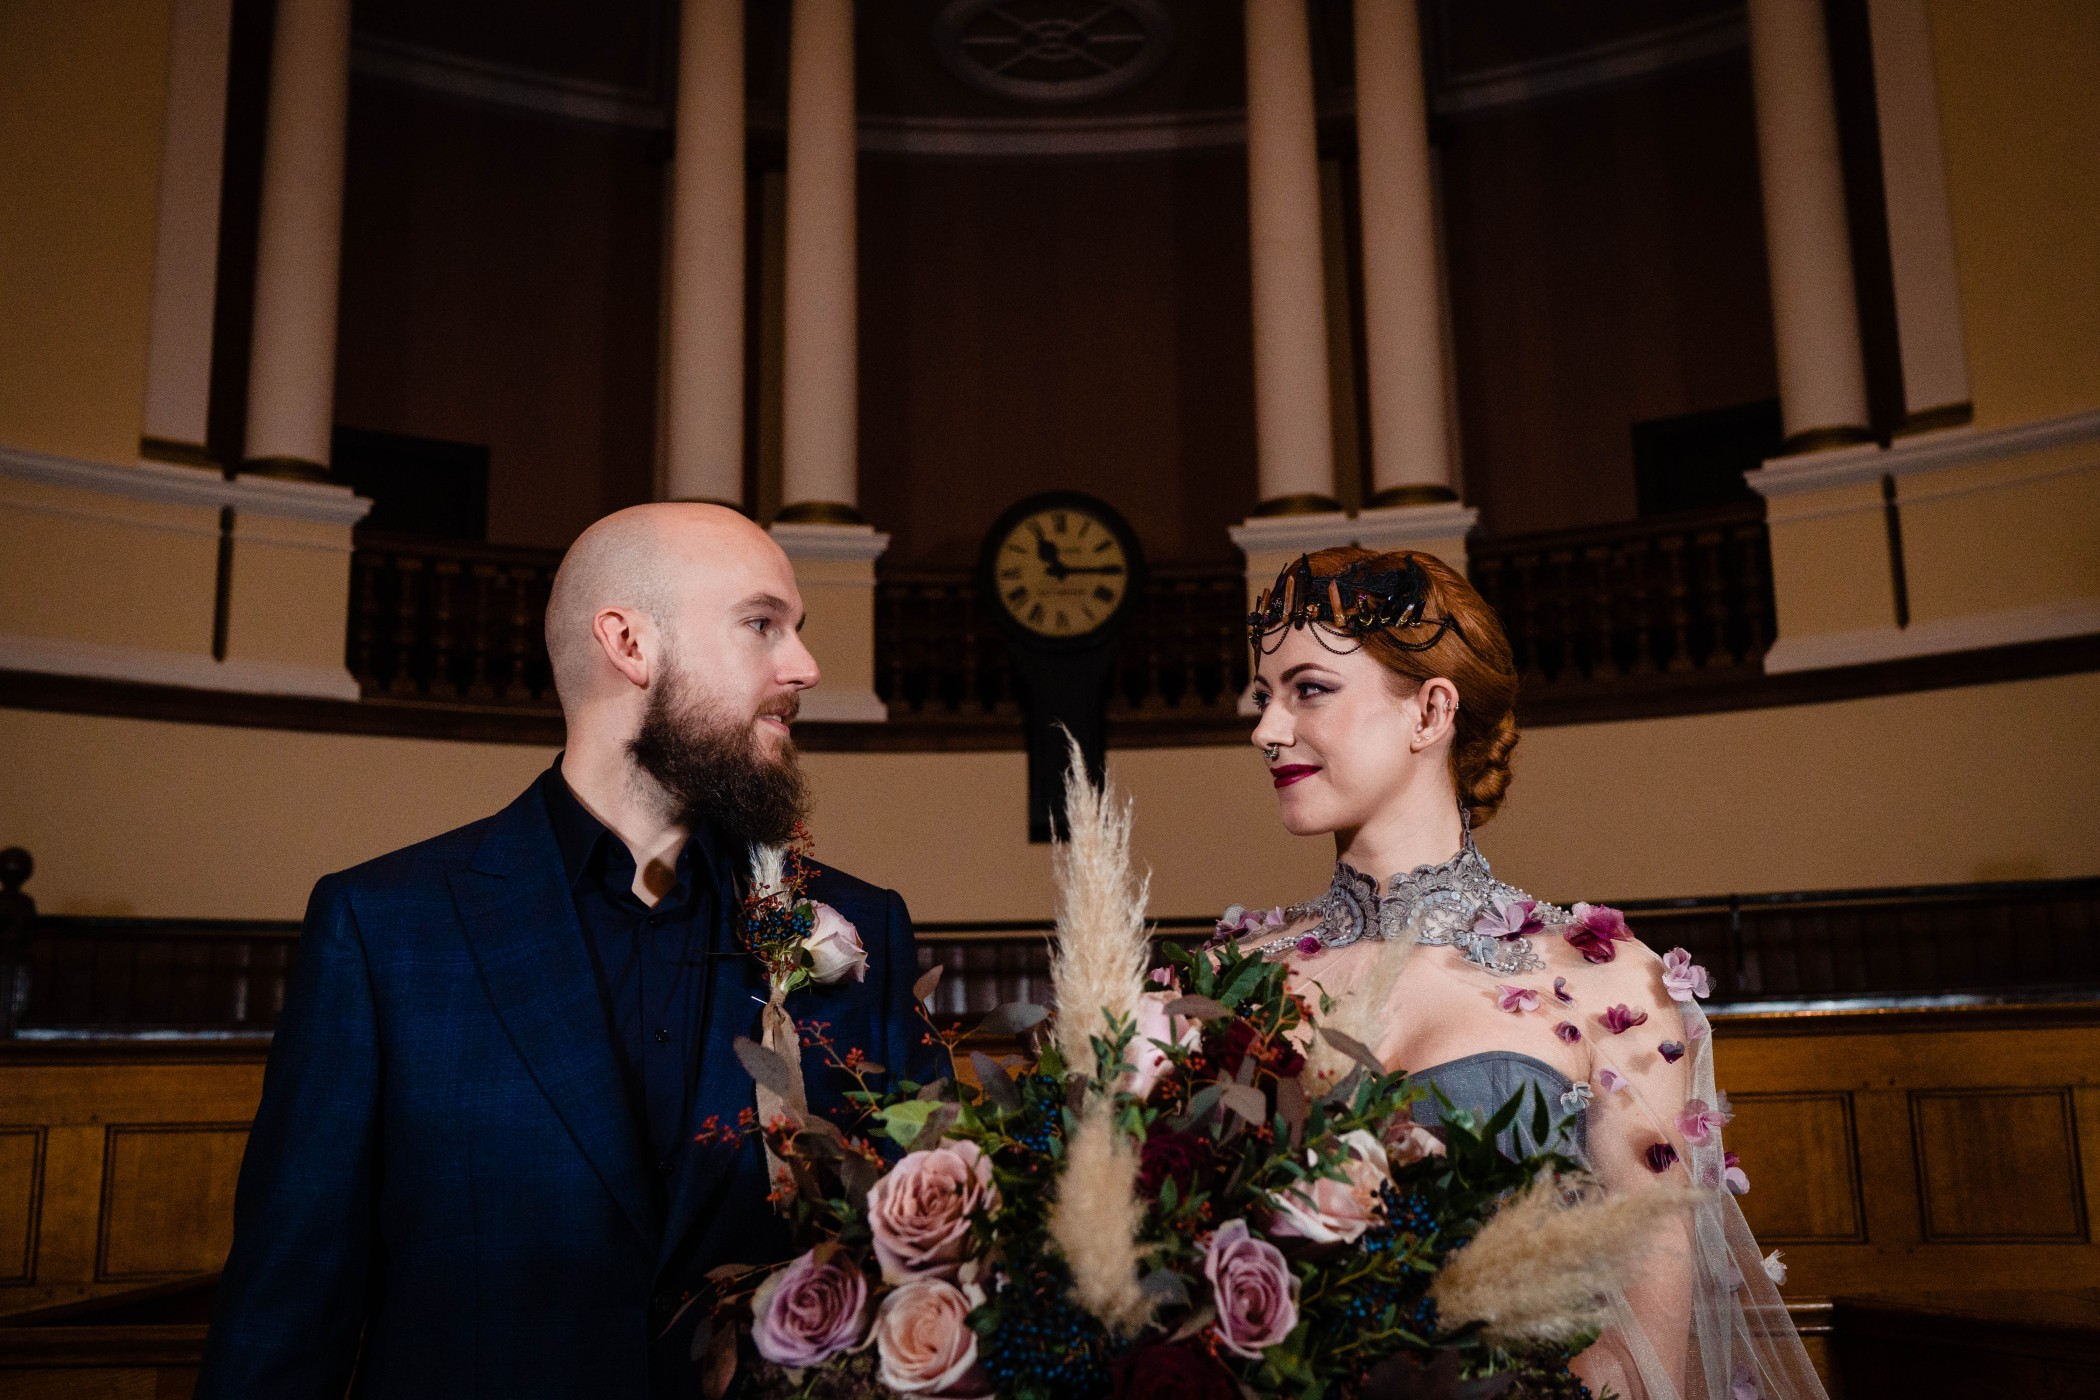 the national justice museum- vicki clayson photography- gothic wedding venue- alternative wedding inspiration- nottingham wedding venue- nottingham wedding suppliers- the best alternative wedding venues